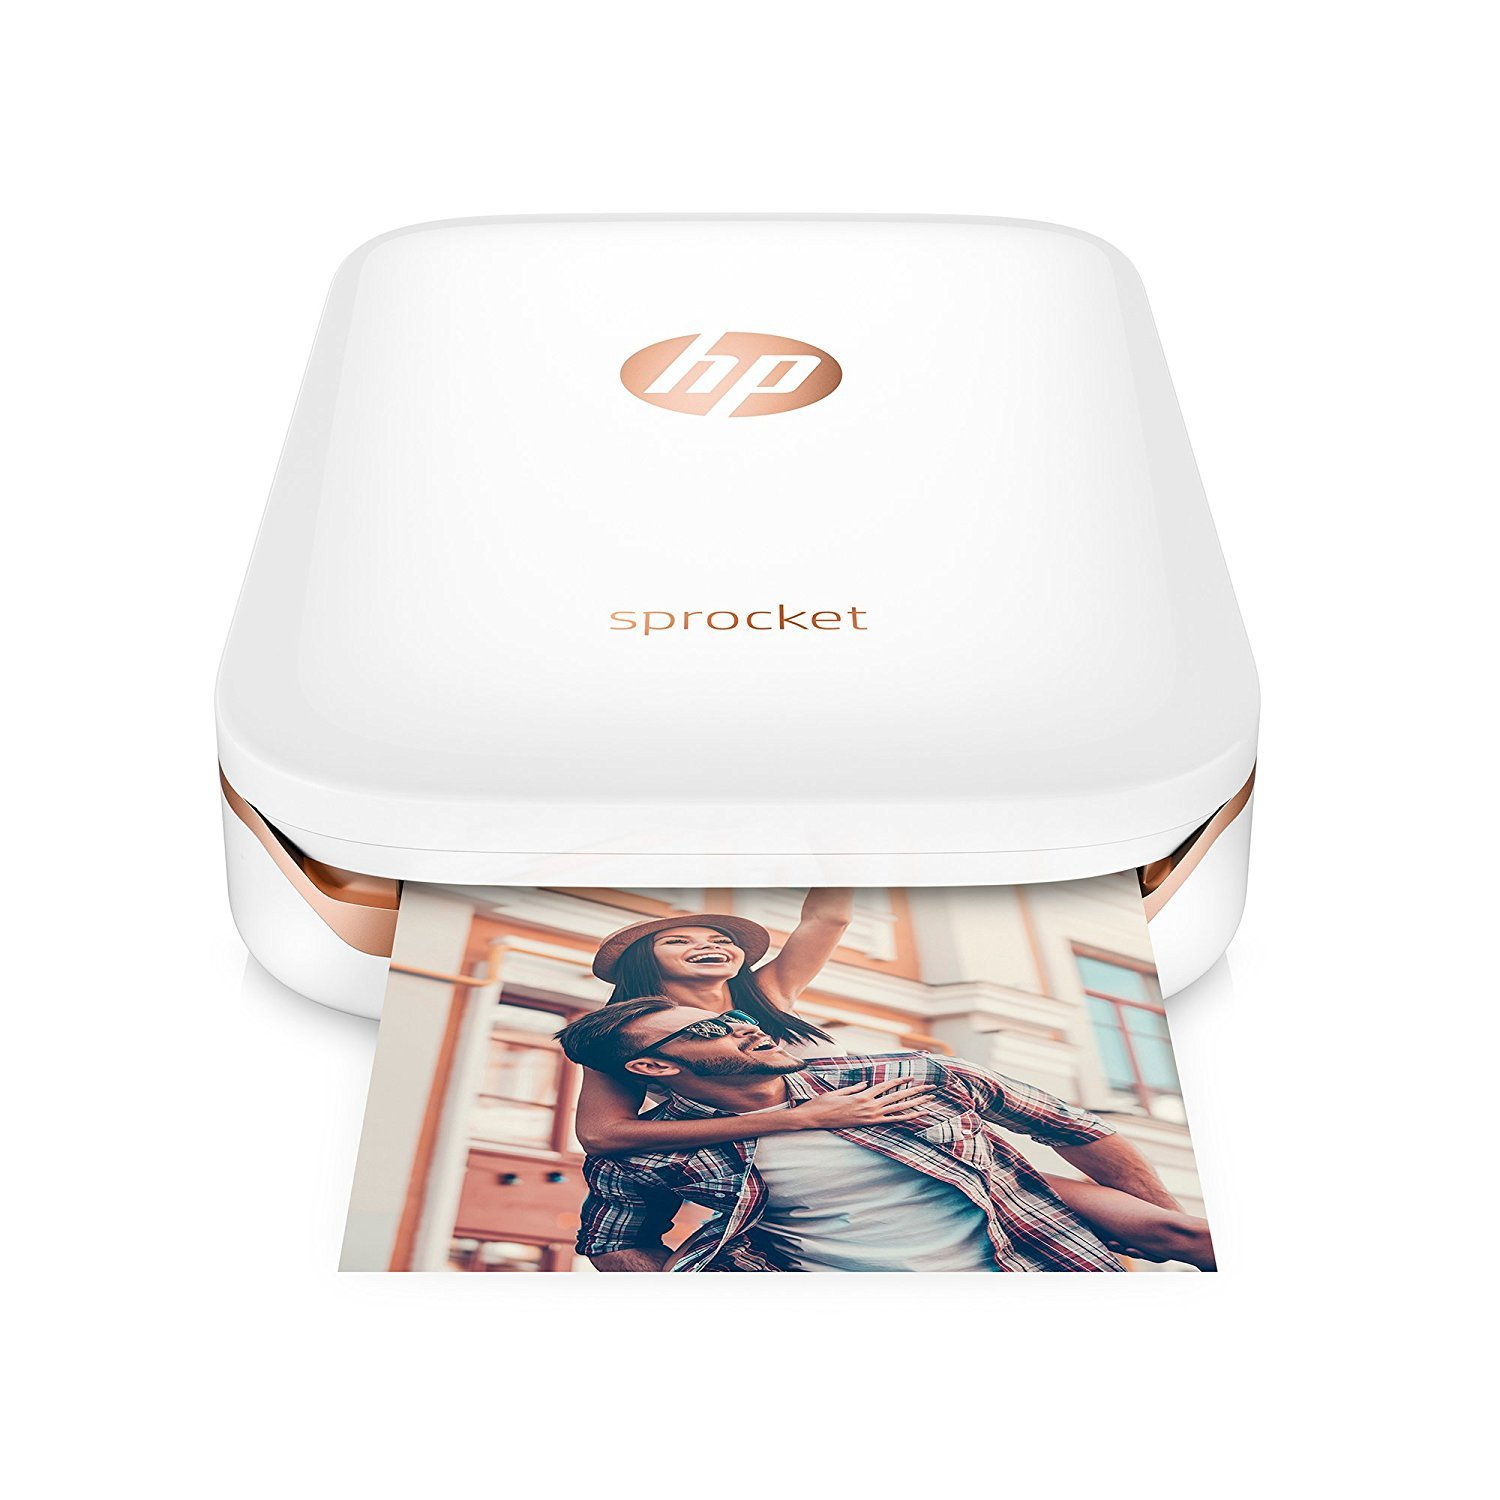 HP Sprocket Photo Printer - white